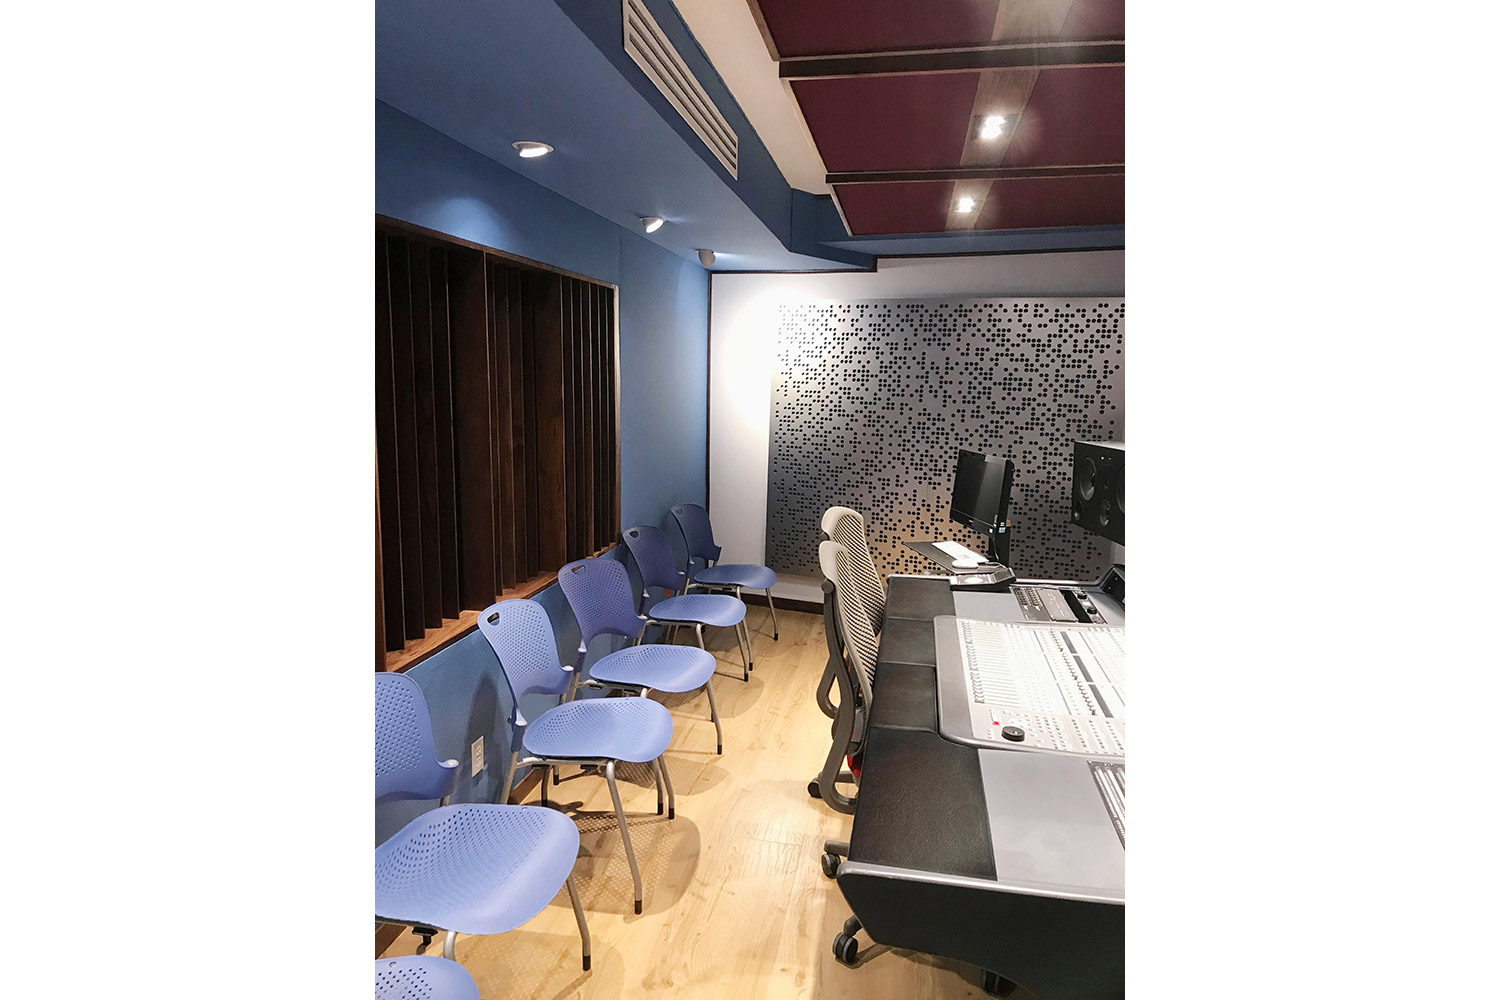 TEC de Monterrey University has grown to include 31 campuses in 25 cities throughout Mexico. A trail-blazing seat of education. After the 2017 earthquake, WSDG was reached to do the new studio design of the facility in a record time. Studios Hallway.